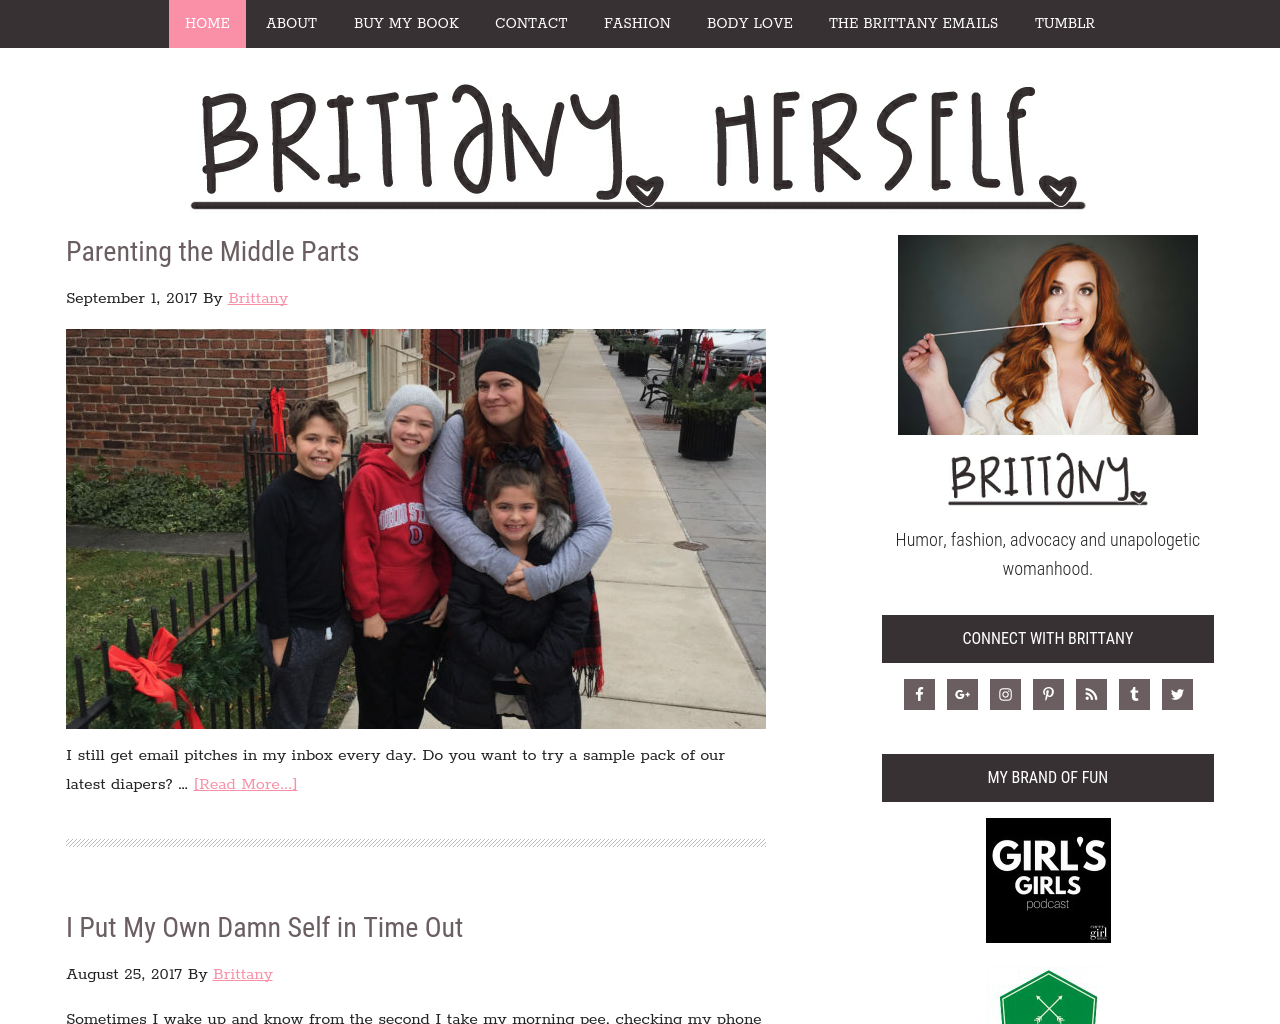 Brittany-Herself-Advertising-Reviews-Pricing